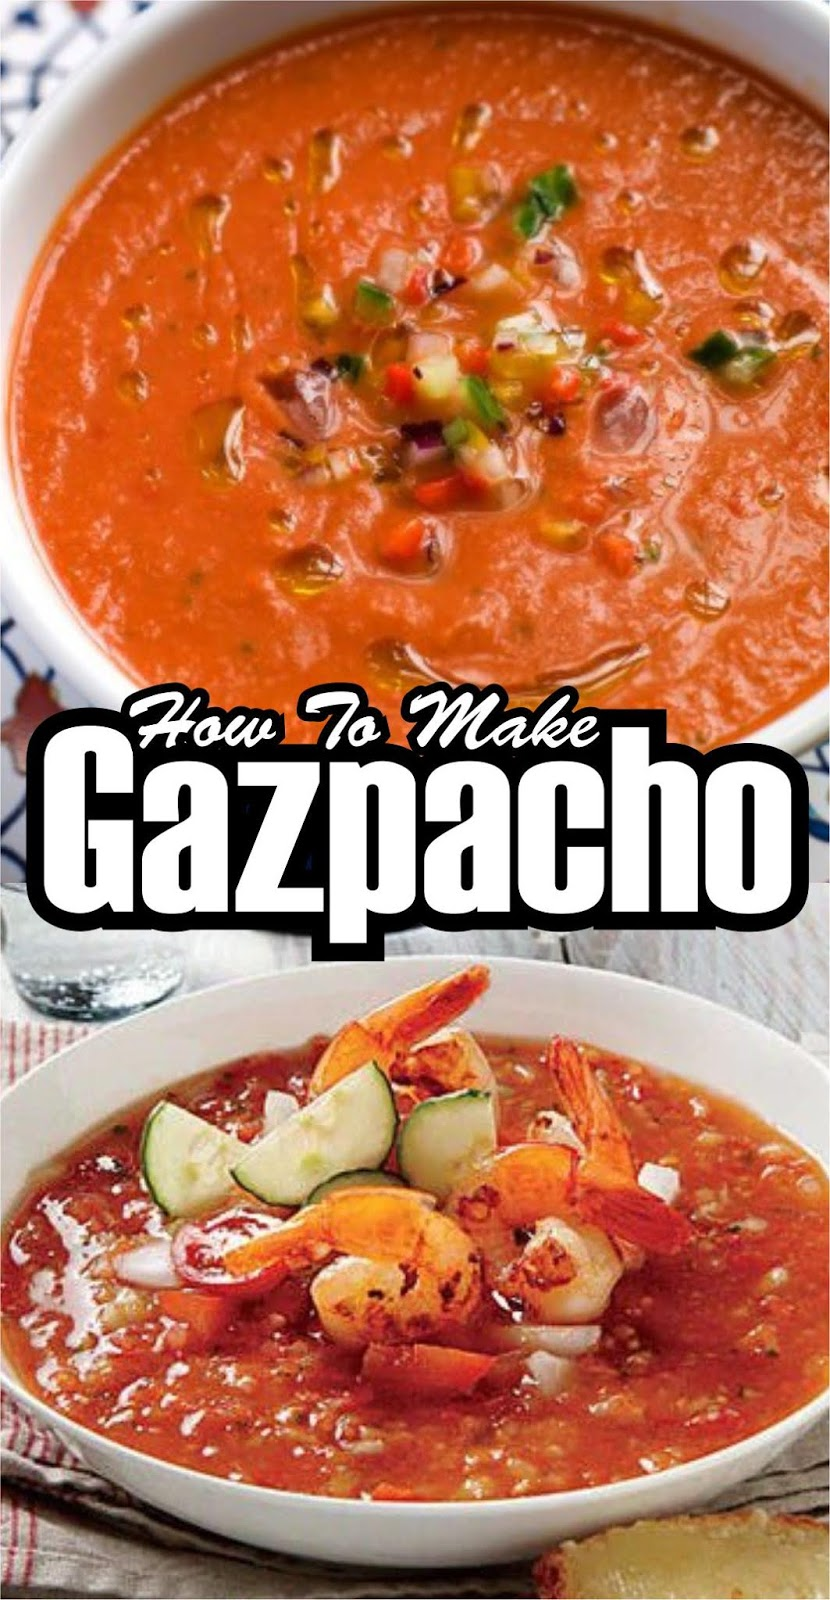 DELICIOUS AND TASTY GAZPACHO